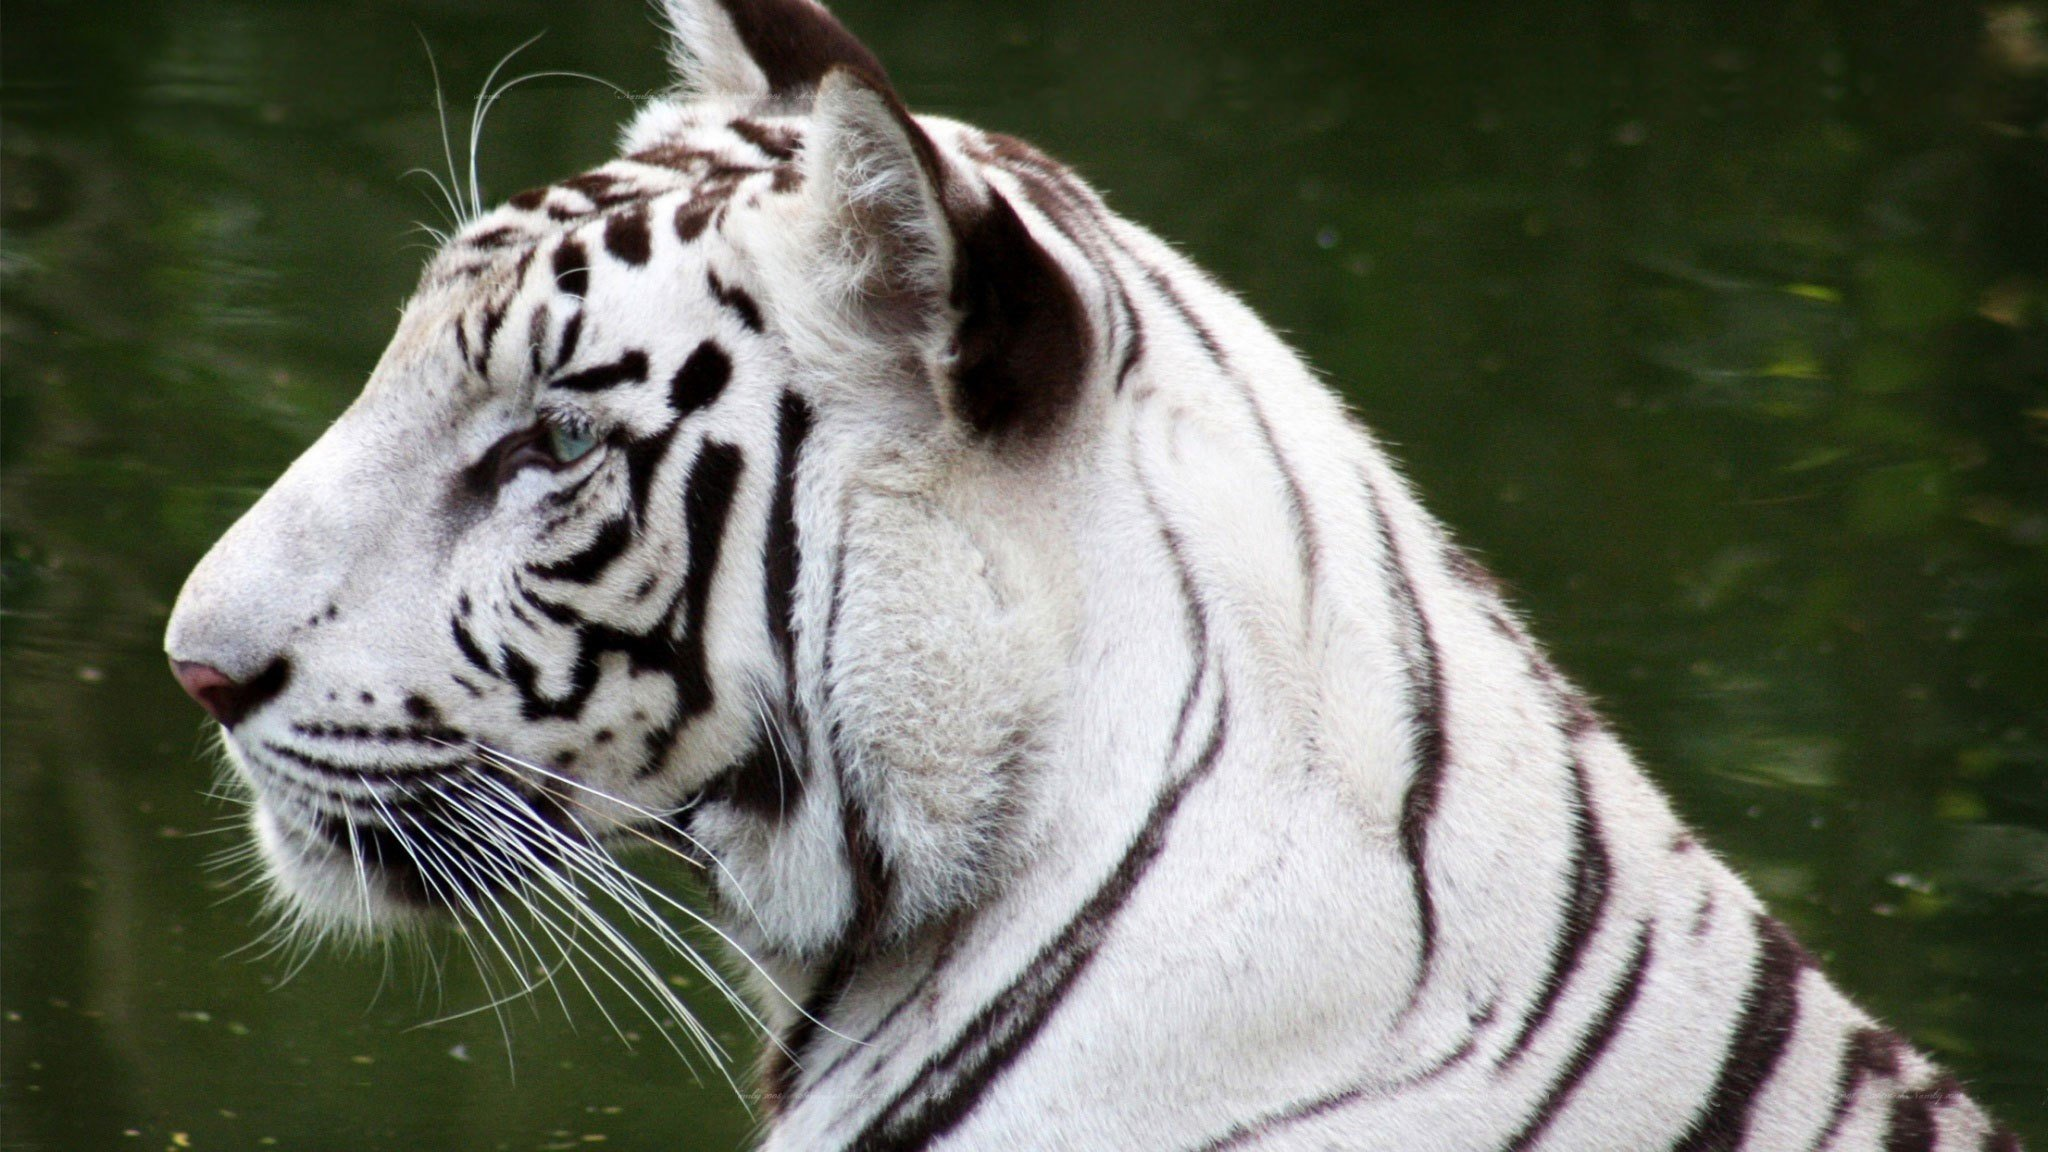 White Tiger Wallpapers for Windows